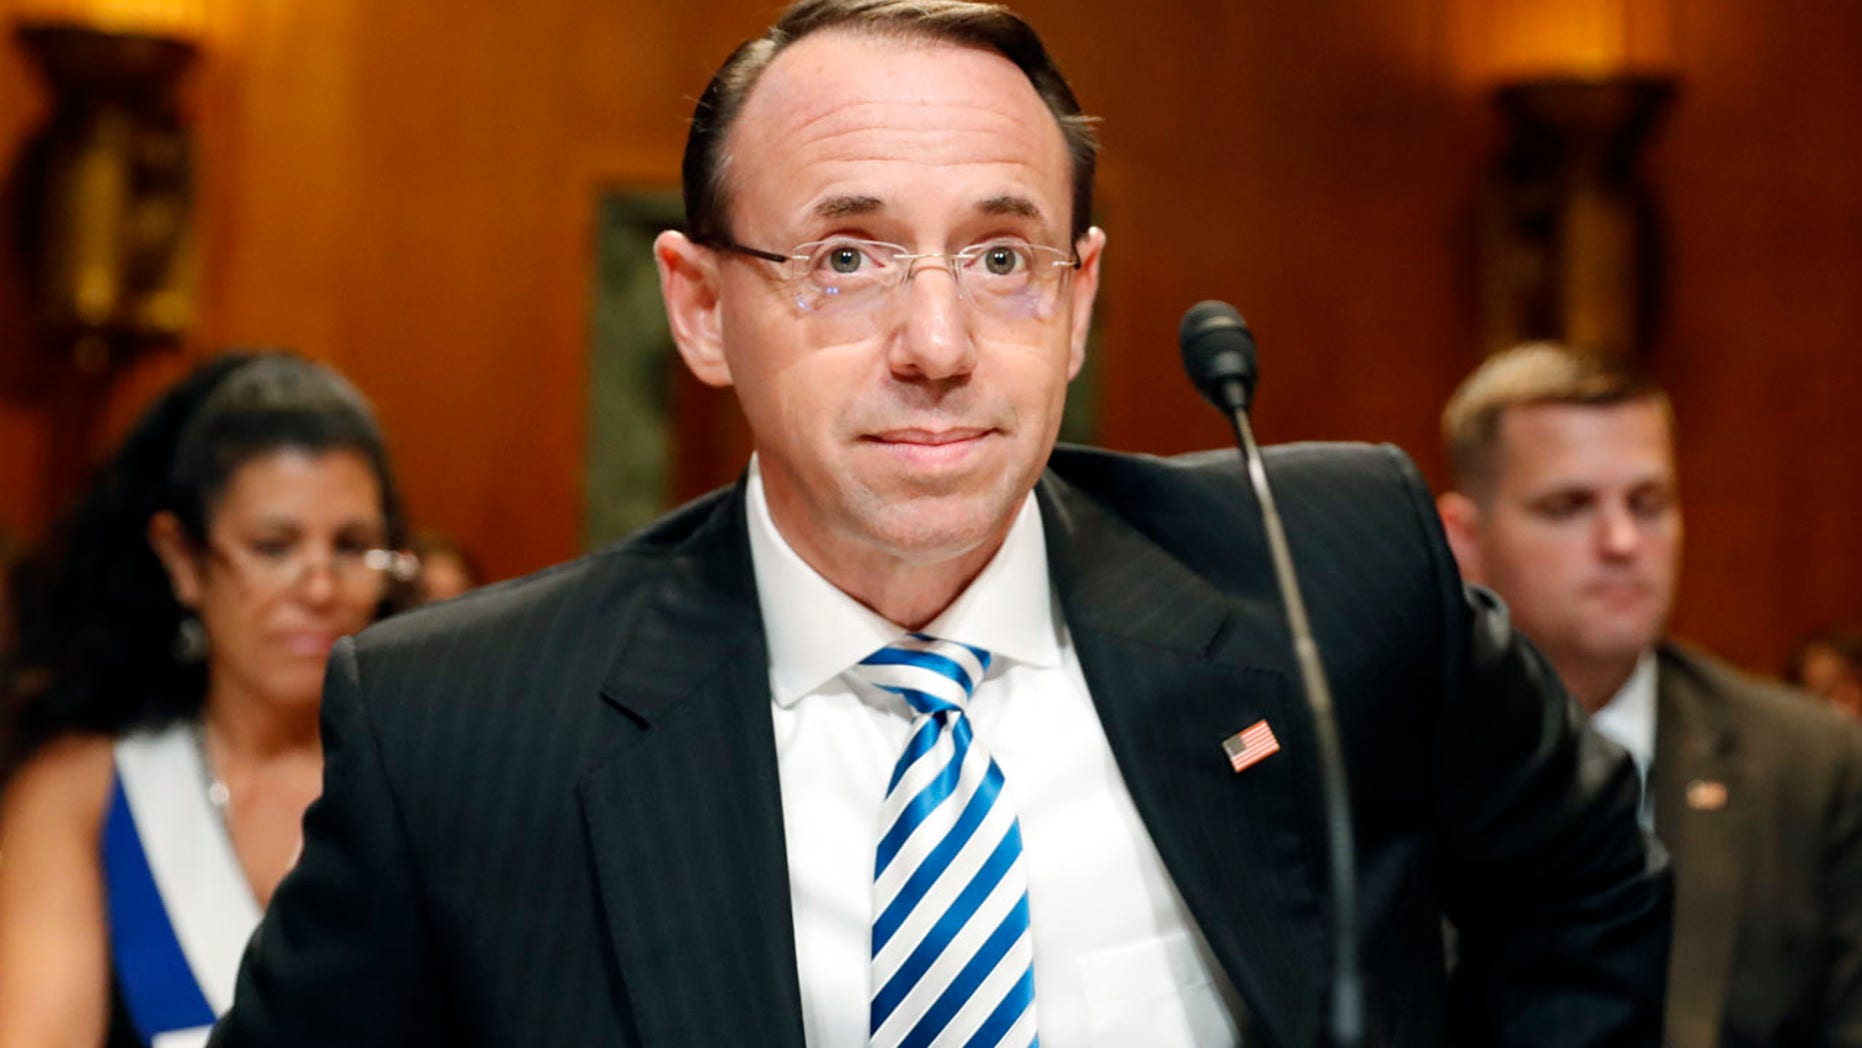 Deputy Attorney General Rod Rosenstein prepares to testify on Capitol Hill in Washington, Tuesday, June 13, 2017, before a Senate Appropriations subcommittee hearing on the Justice Department's fiscal 2018 budget. Rosenstein said he has seen no evidence of good cause to fire the special prosecutor overseeing the Russia investigation. (AP Photo/Alex Brandon)